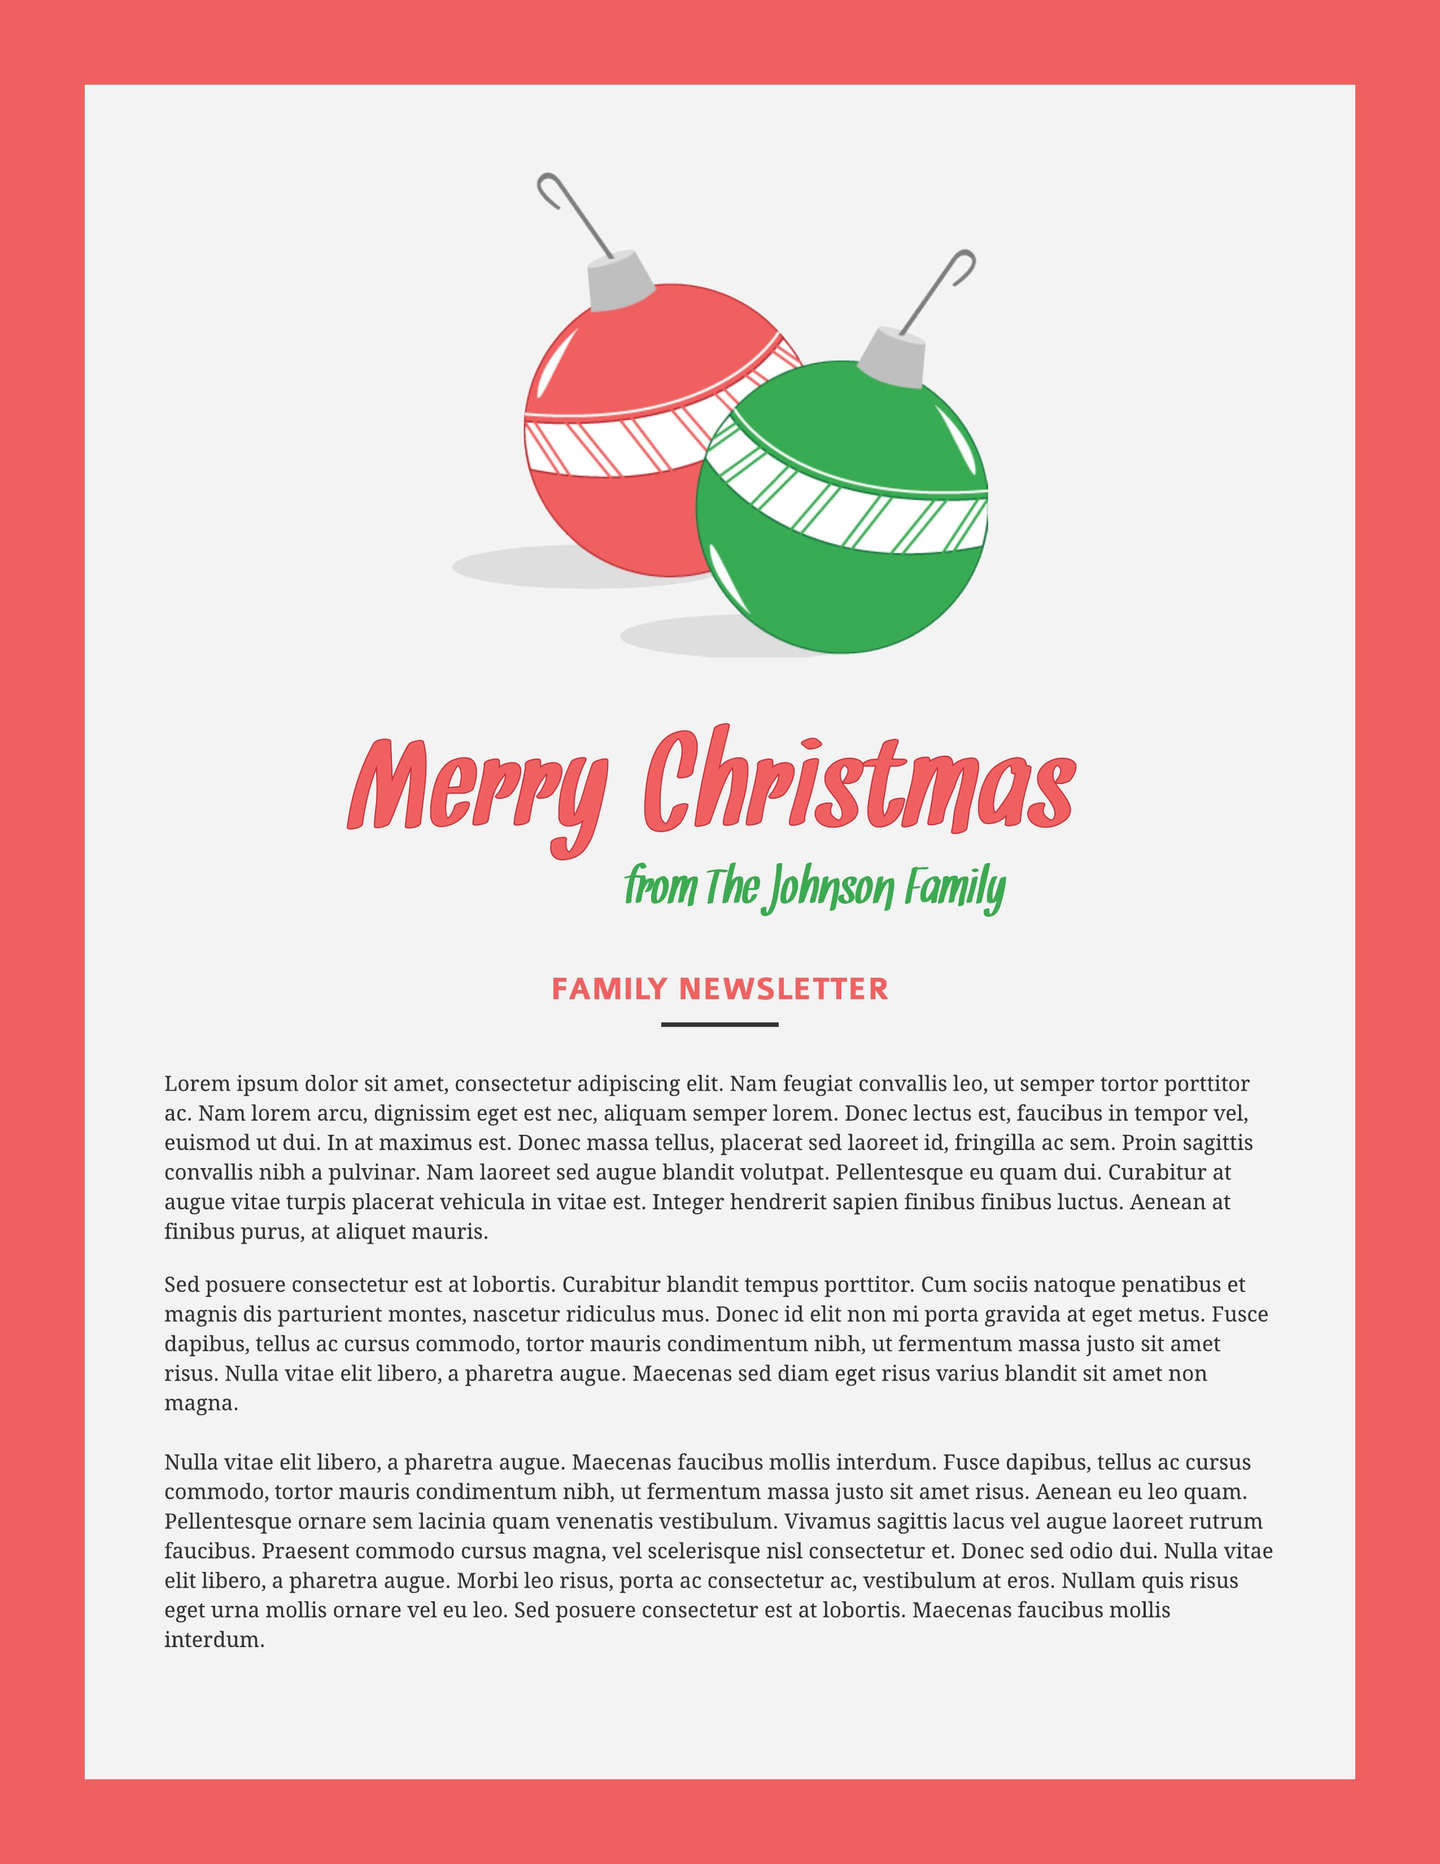 Free Holiday Newsletter Templates & Examples